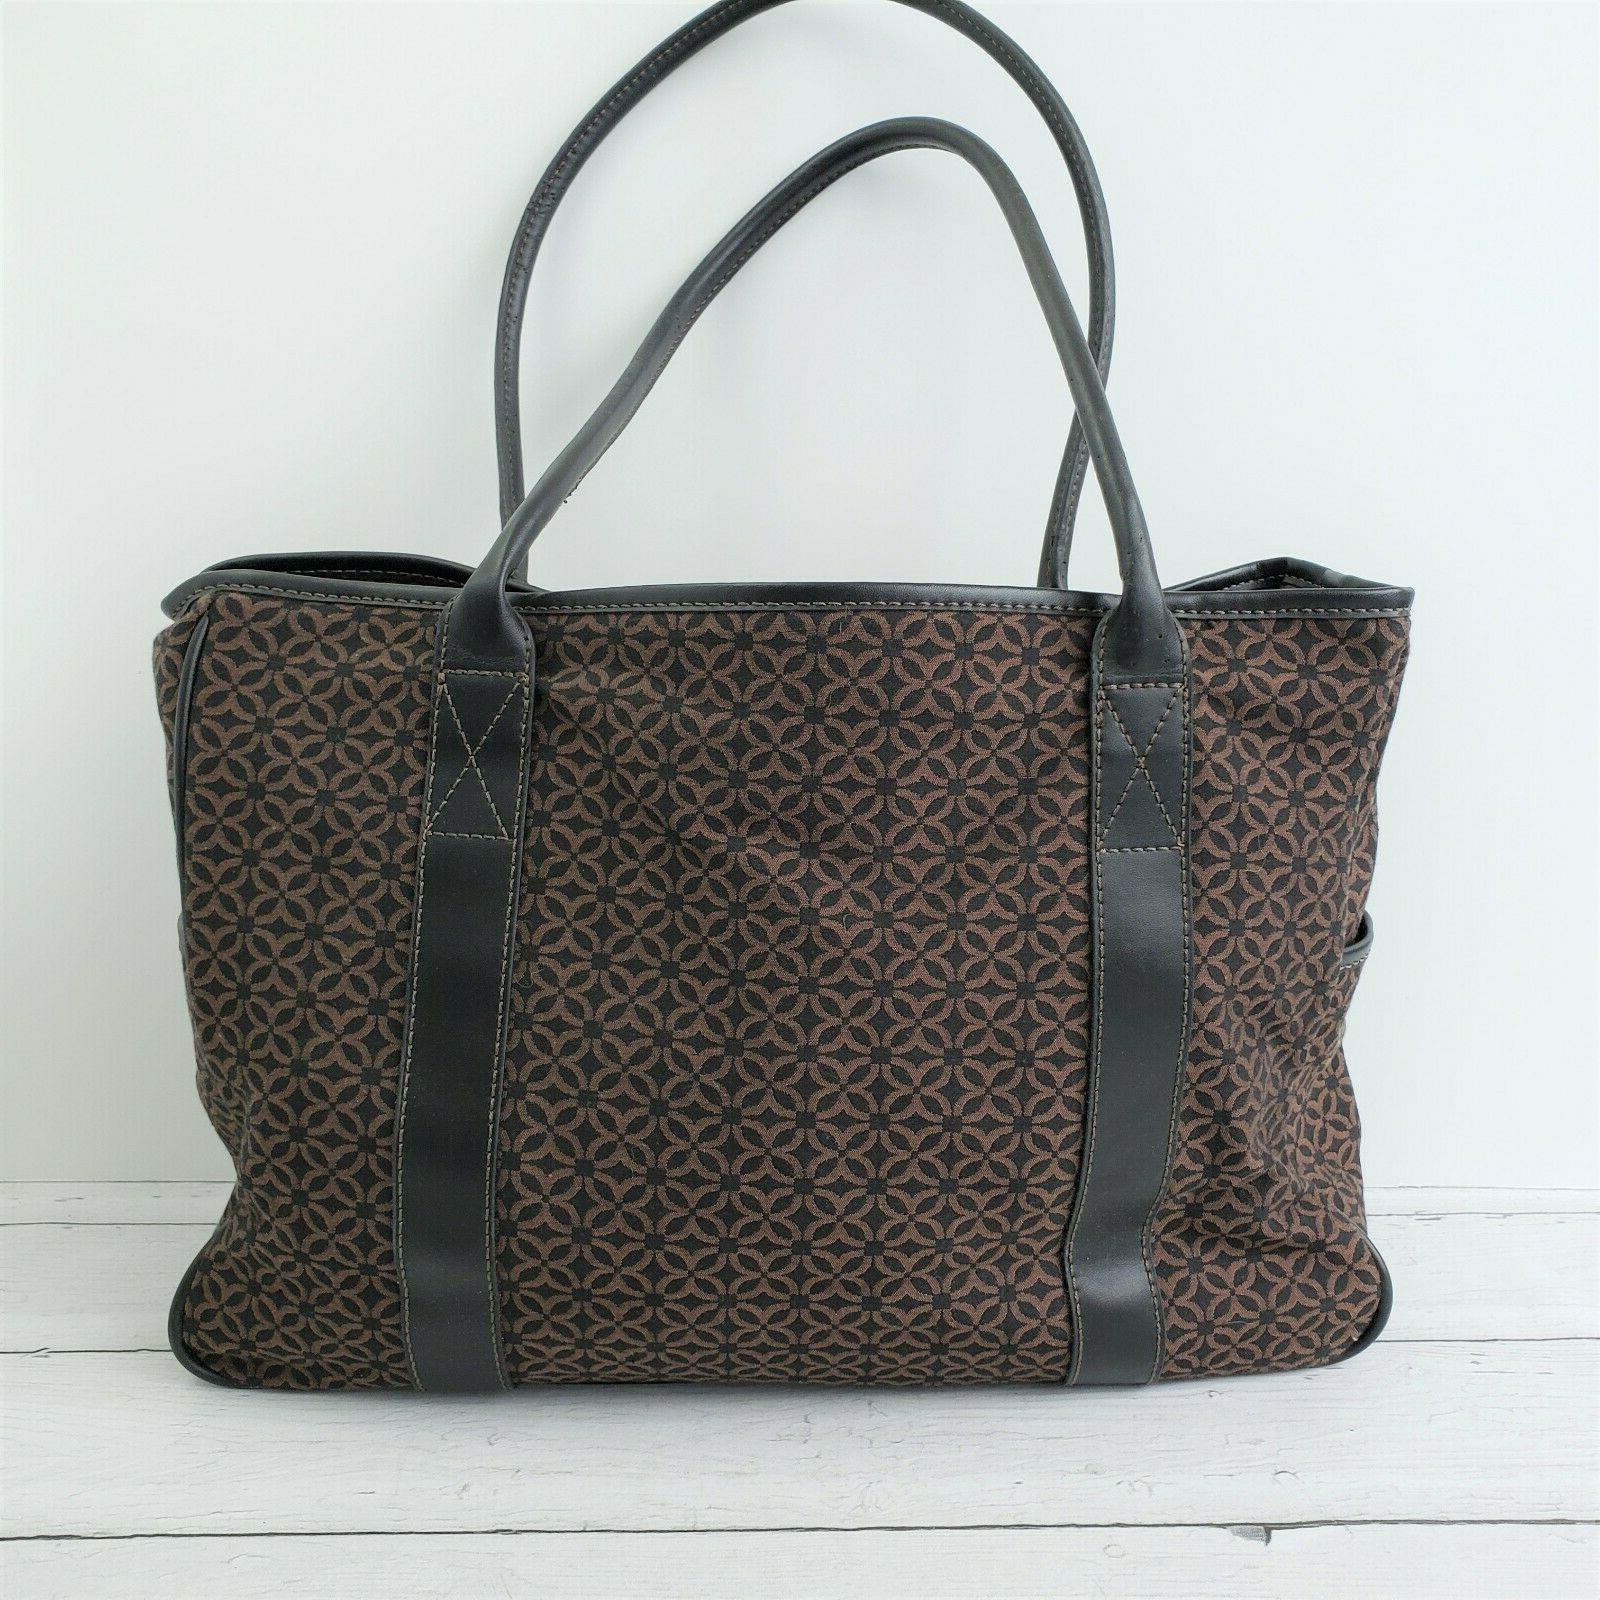 RELIC by FOSSIL Laptop Tote Padded Compartments